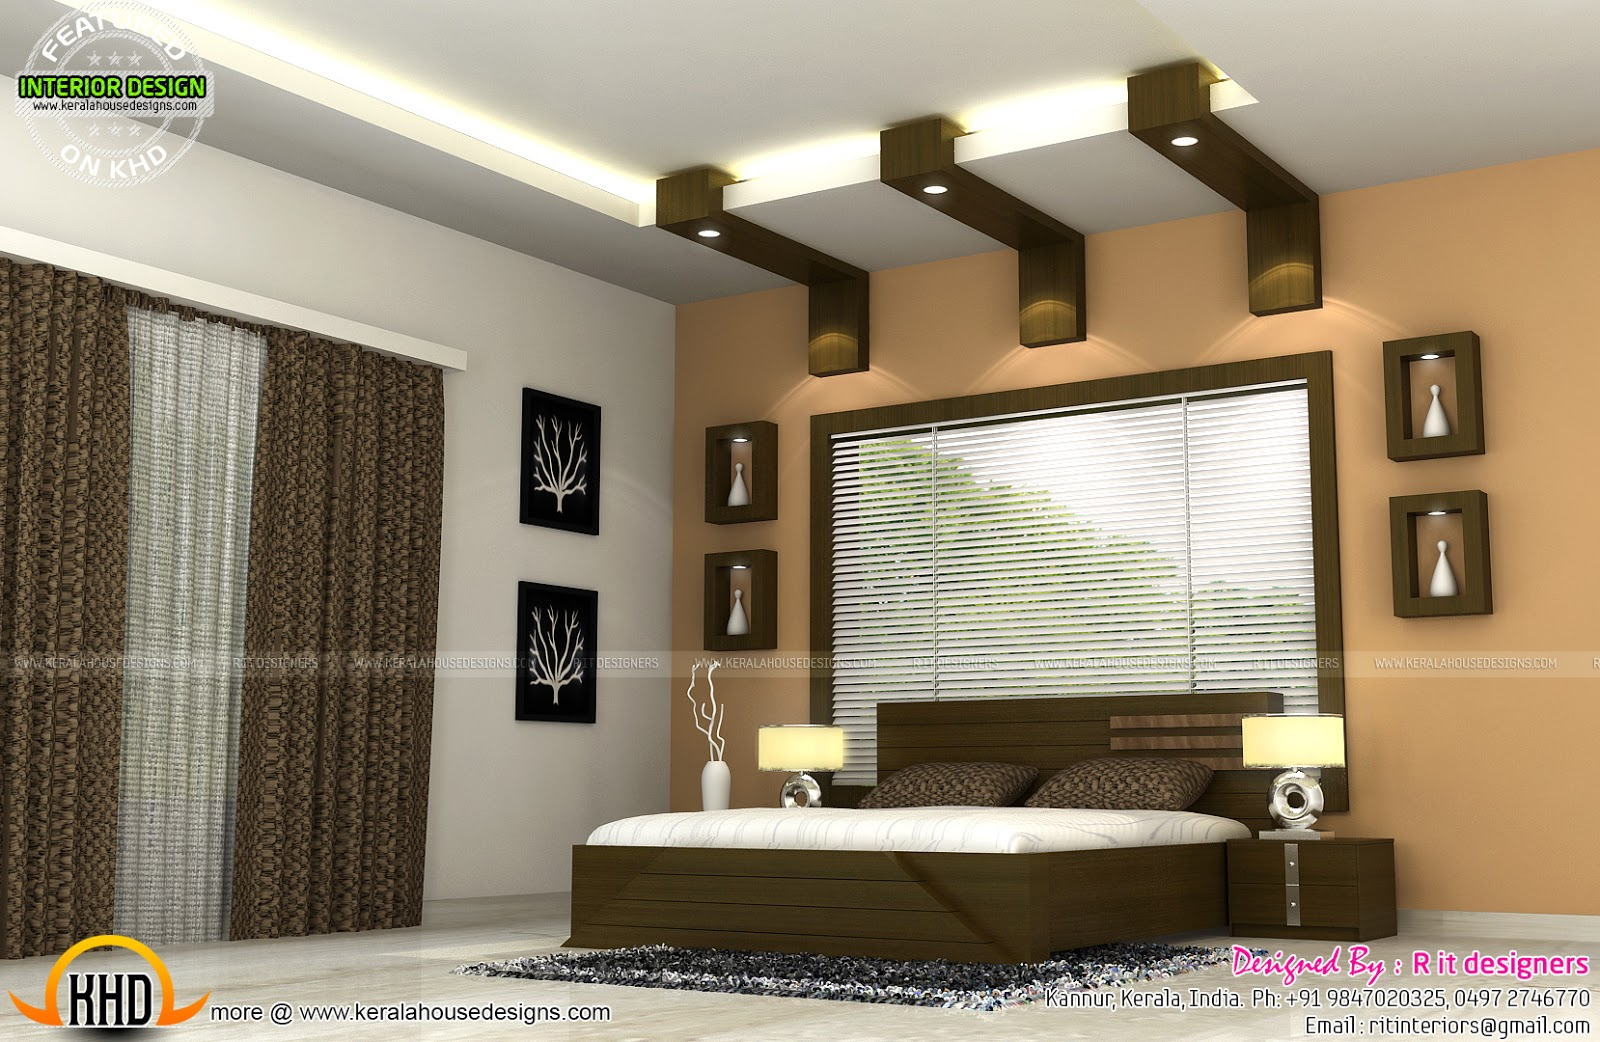 Interiors of bedrooms and kitchen kerala home design and floor plans Home interior wardrobe design